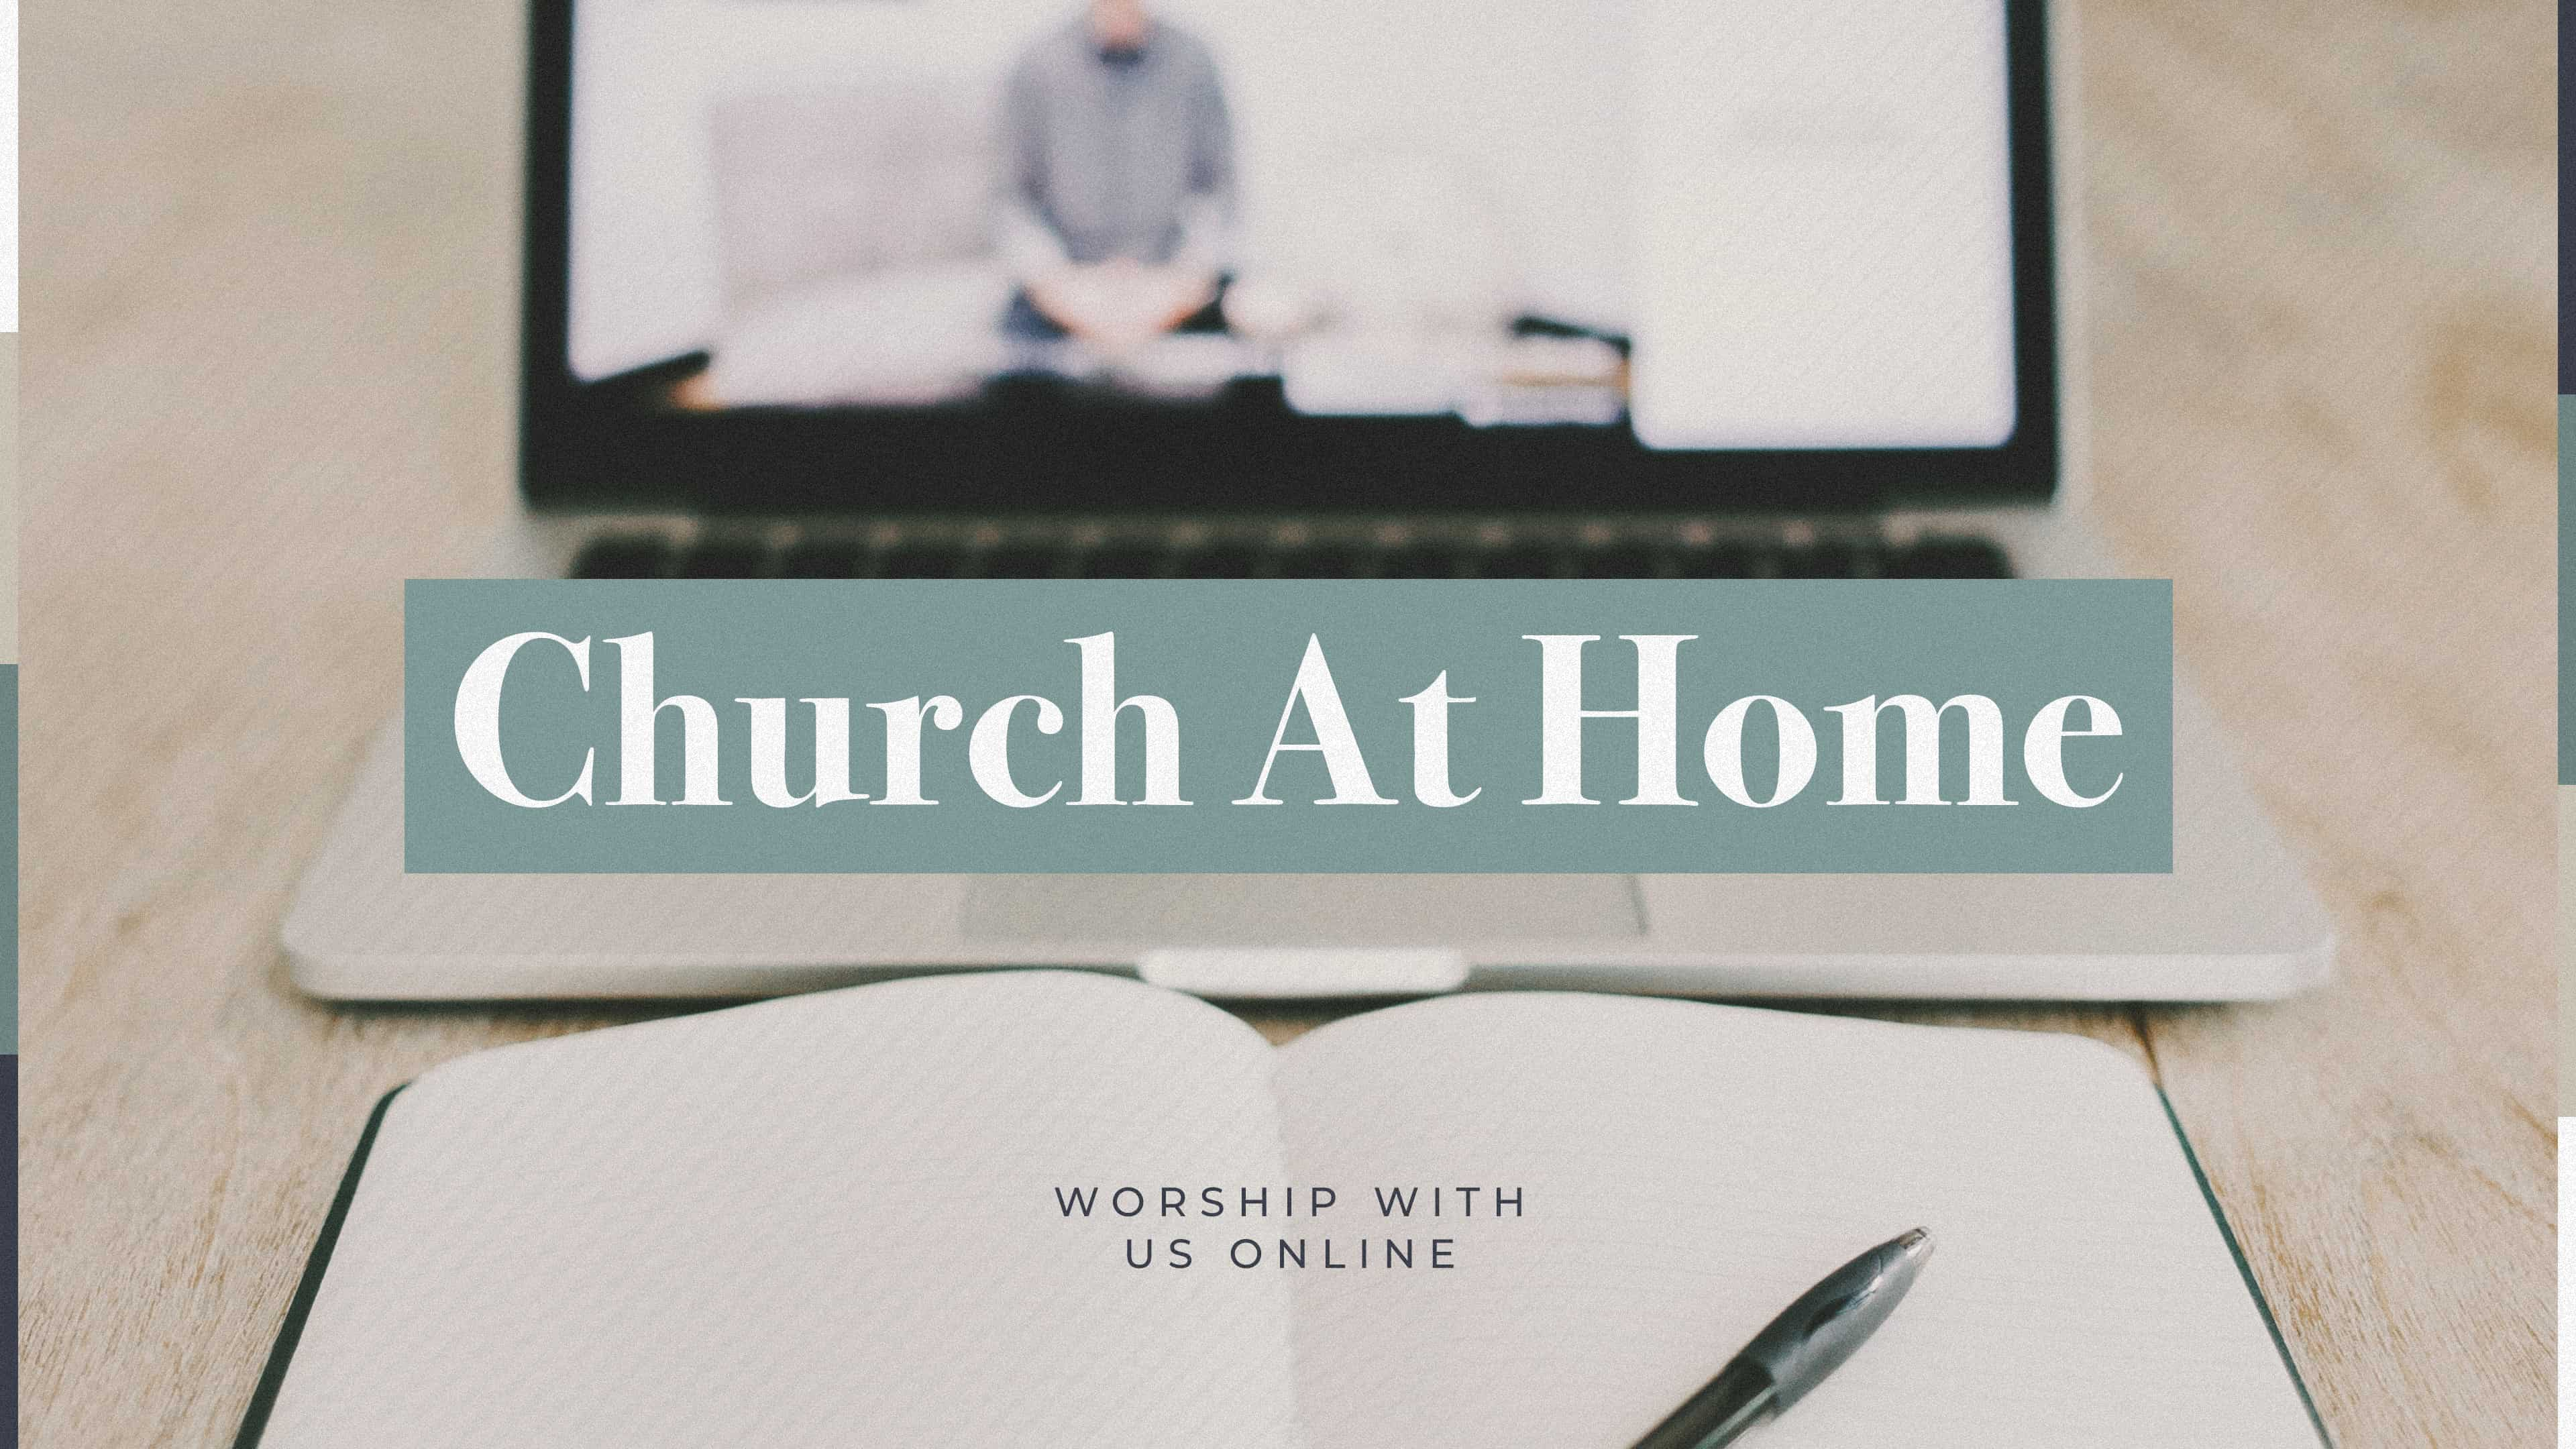 church-at-home-worship-with-us-online-notebook-subtitle